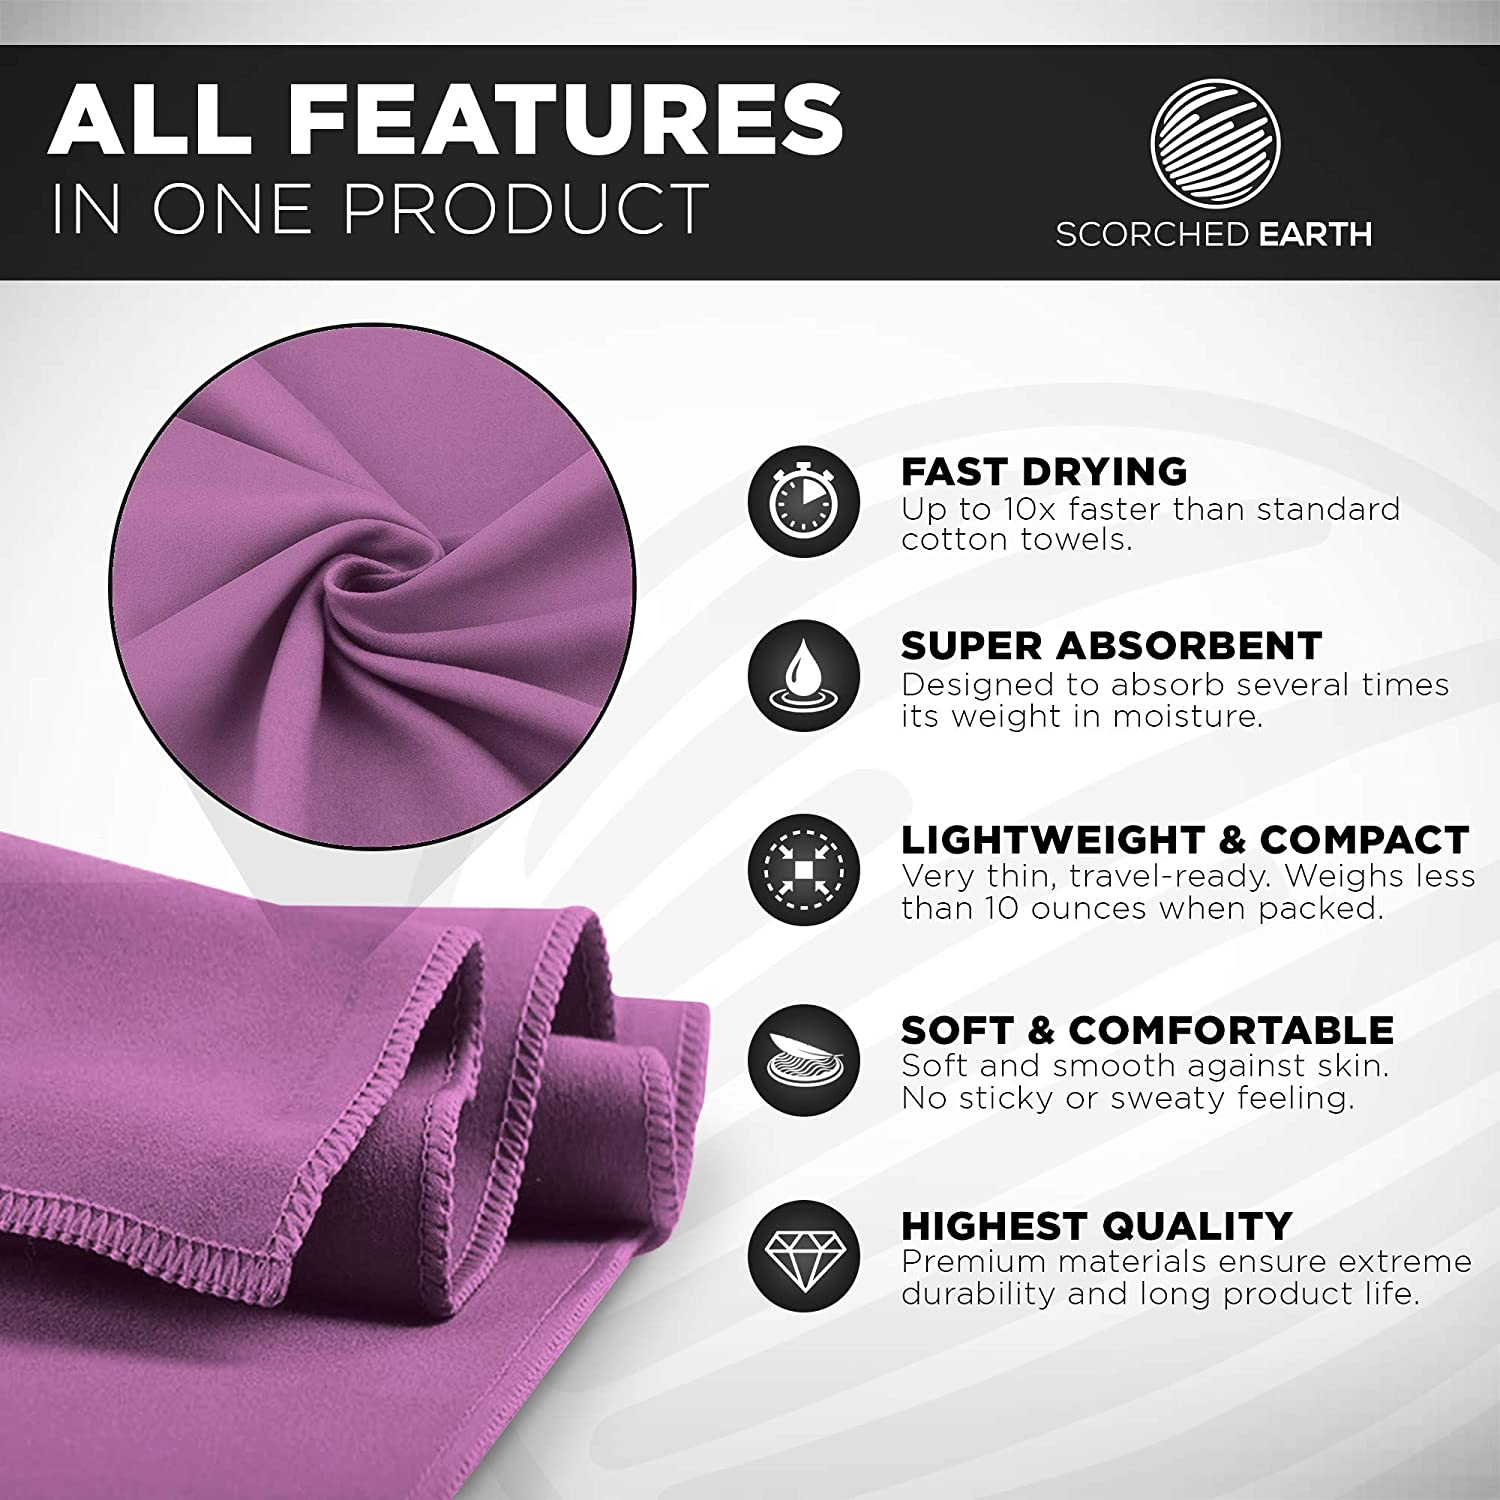 ScorchedEarth Microfiber Travel /& Sports Towel Set Hiking Yoga Swimming Includes 2 Sizes Carrying Bag /& Clip Lightweight Super Absorbent Backpacking Compact Beach Quick Dry for Camping